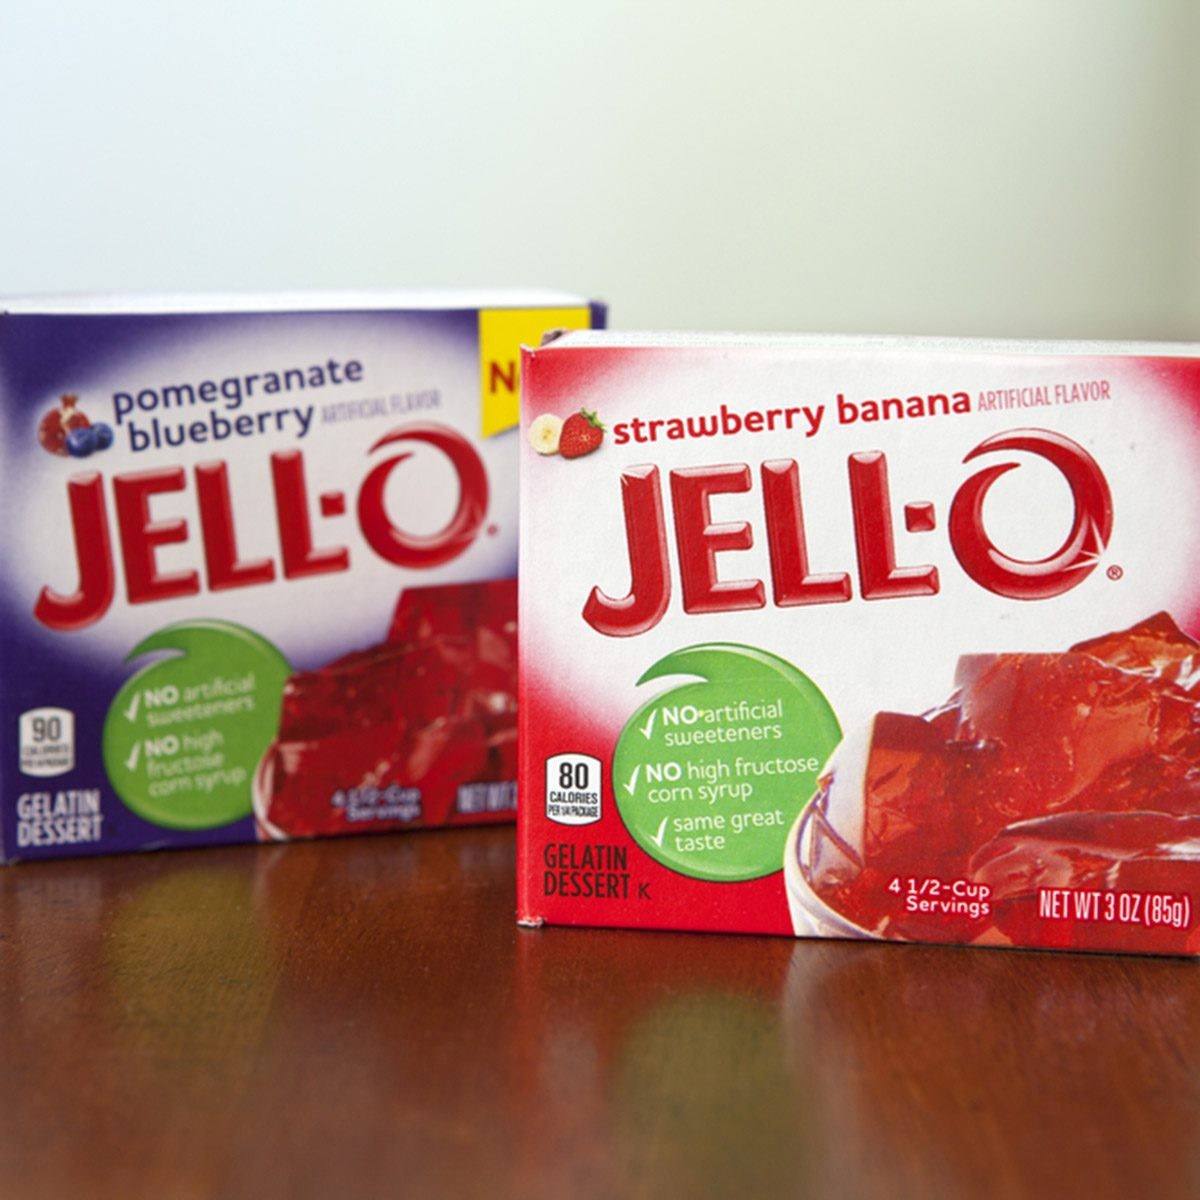 Boxes of Jell-o